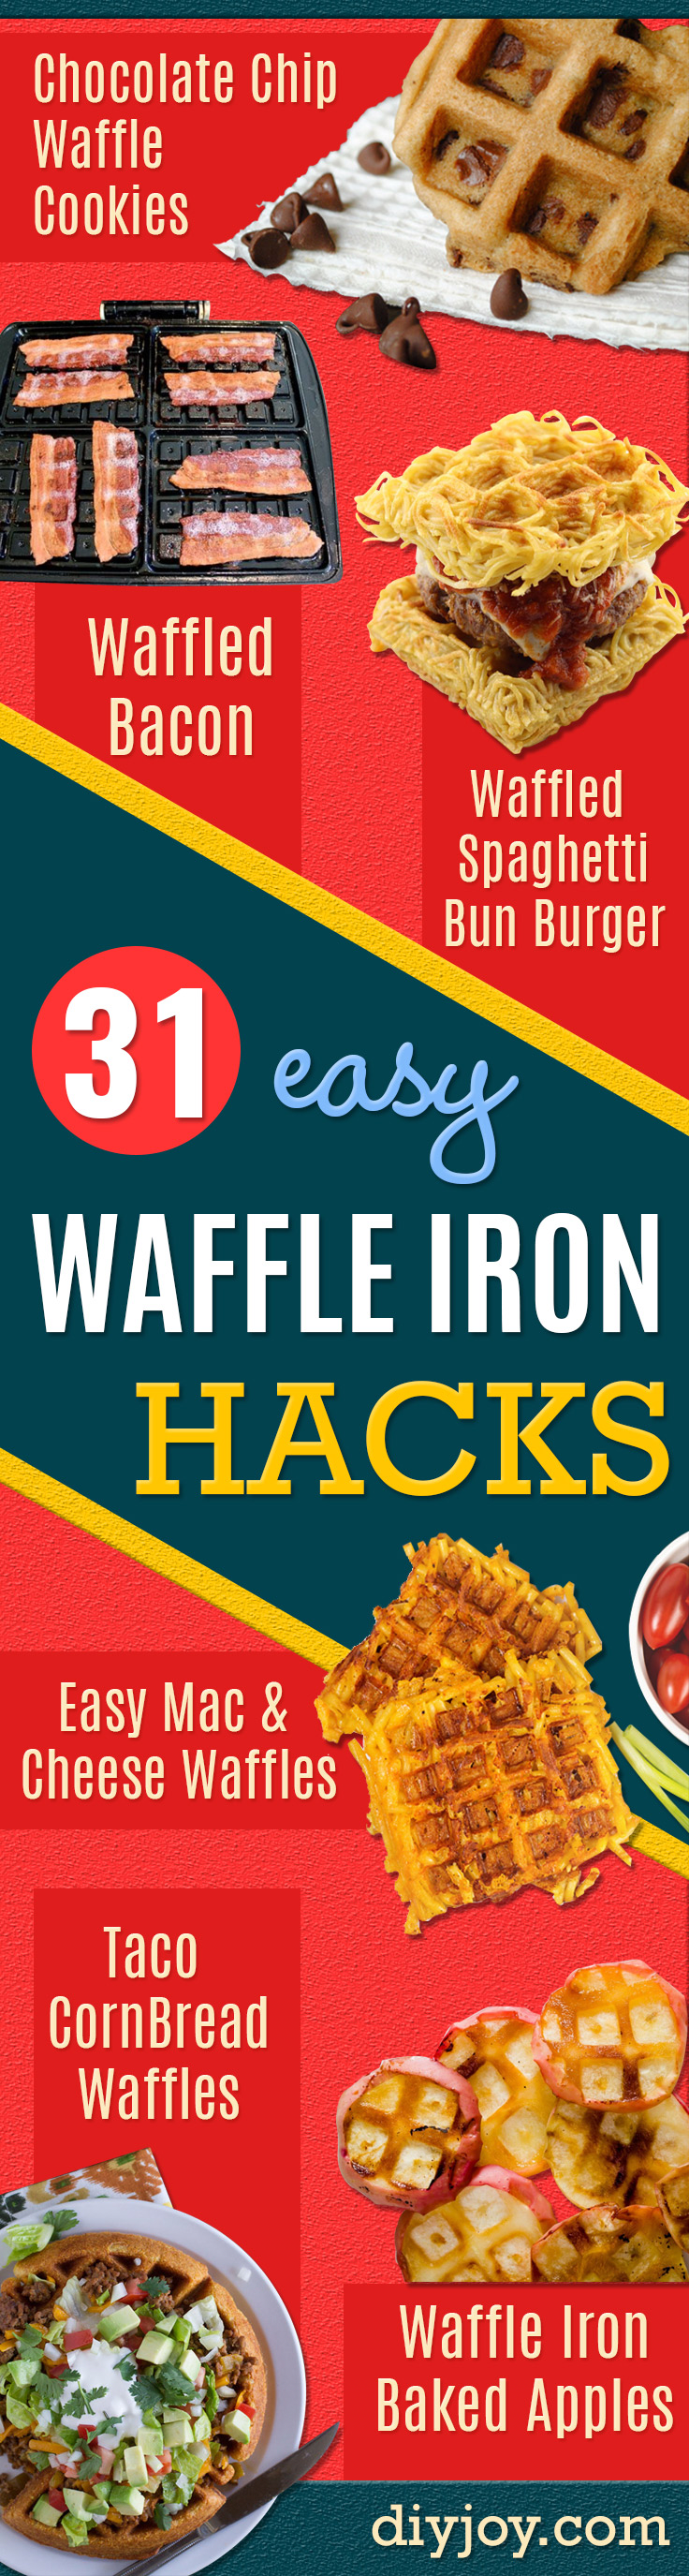 Waffle Iron Hacks and Easy Recipes for Waffle Irons - Quick Ways to Make Healthy Meals in a Waffle Maker - Breakfast, Dinner, Lunch, Dessert and Snack Ideas - Homemade Pizza, Cinnamon Rolls, Egg, Low Carb, Sandwich, Bisquick, Savory Recipes and Biscuits